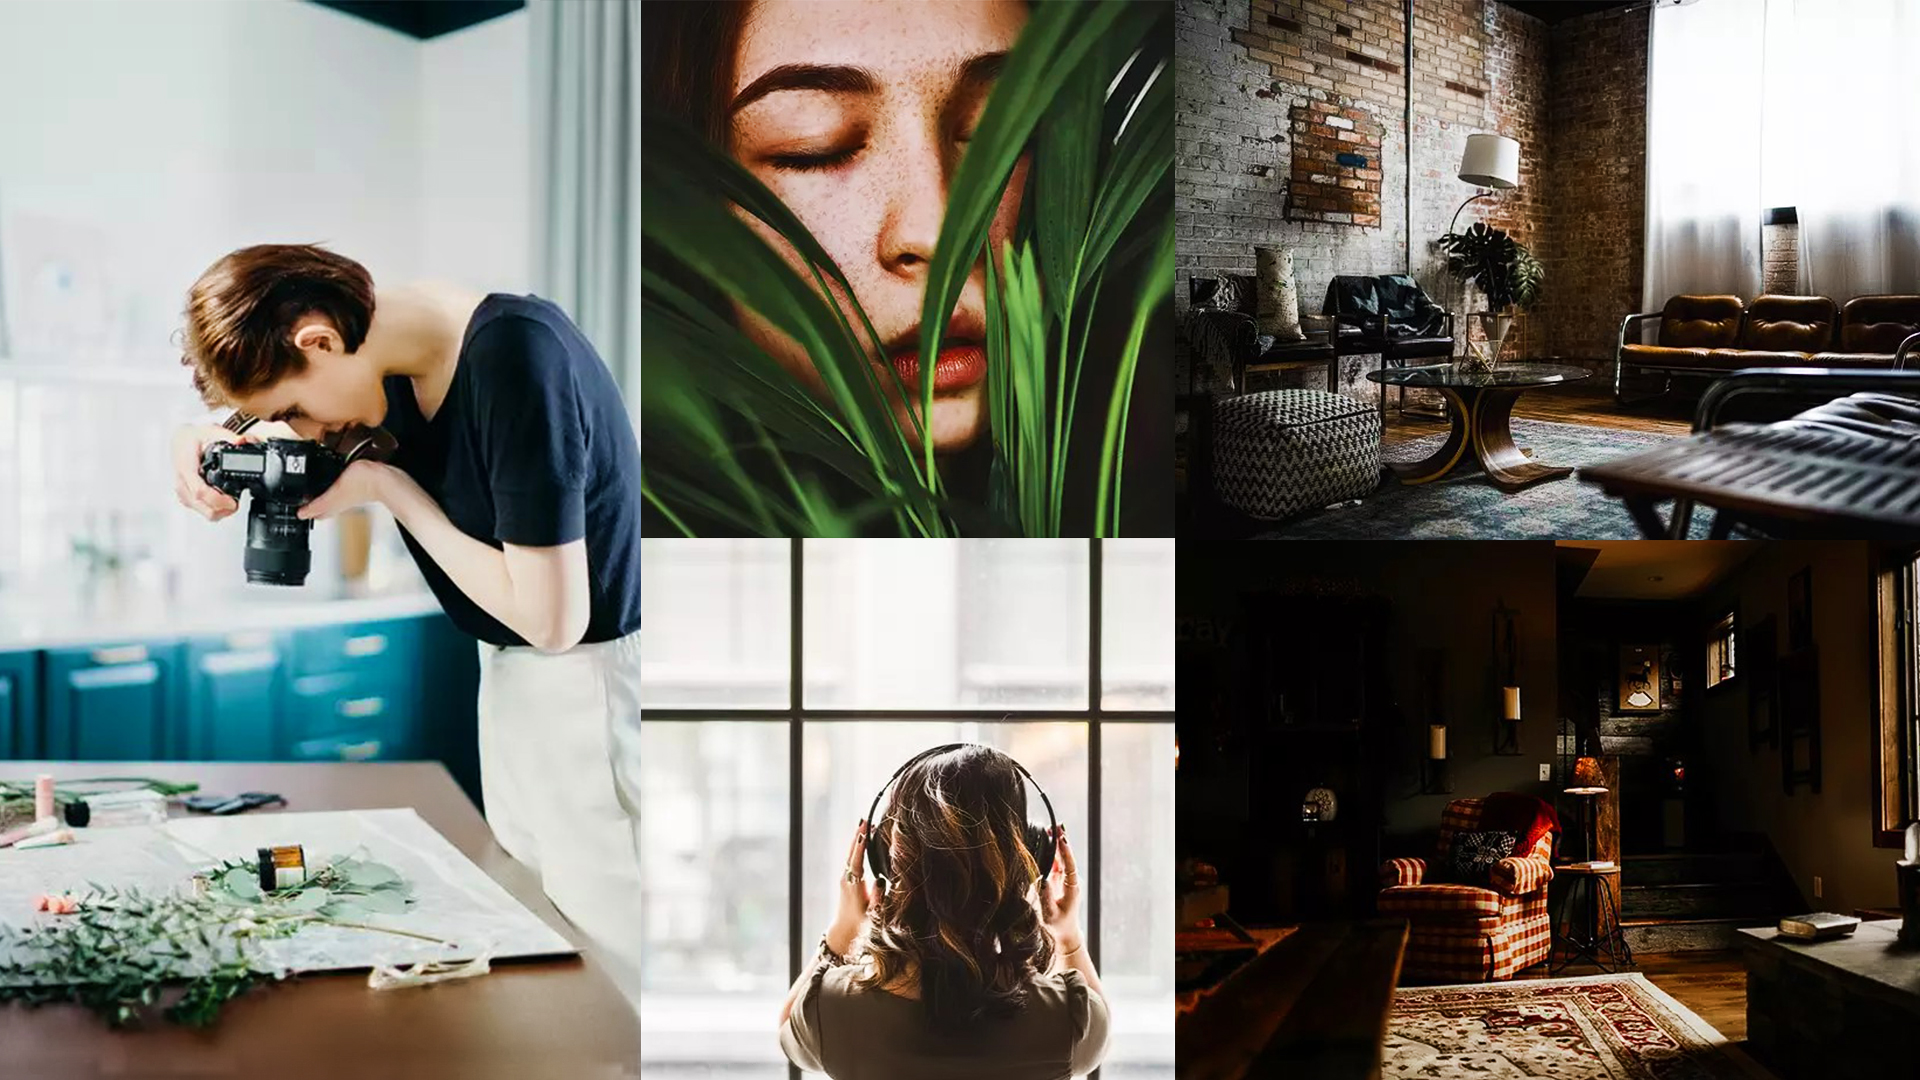 Stuck At Home? Try This Tips For Better Indoor Photography